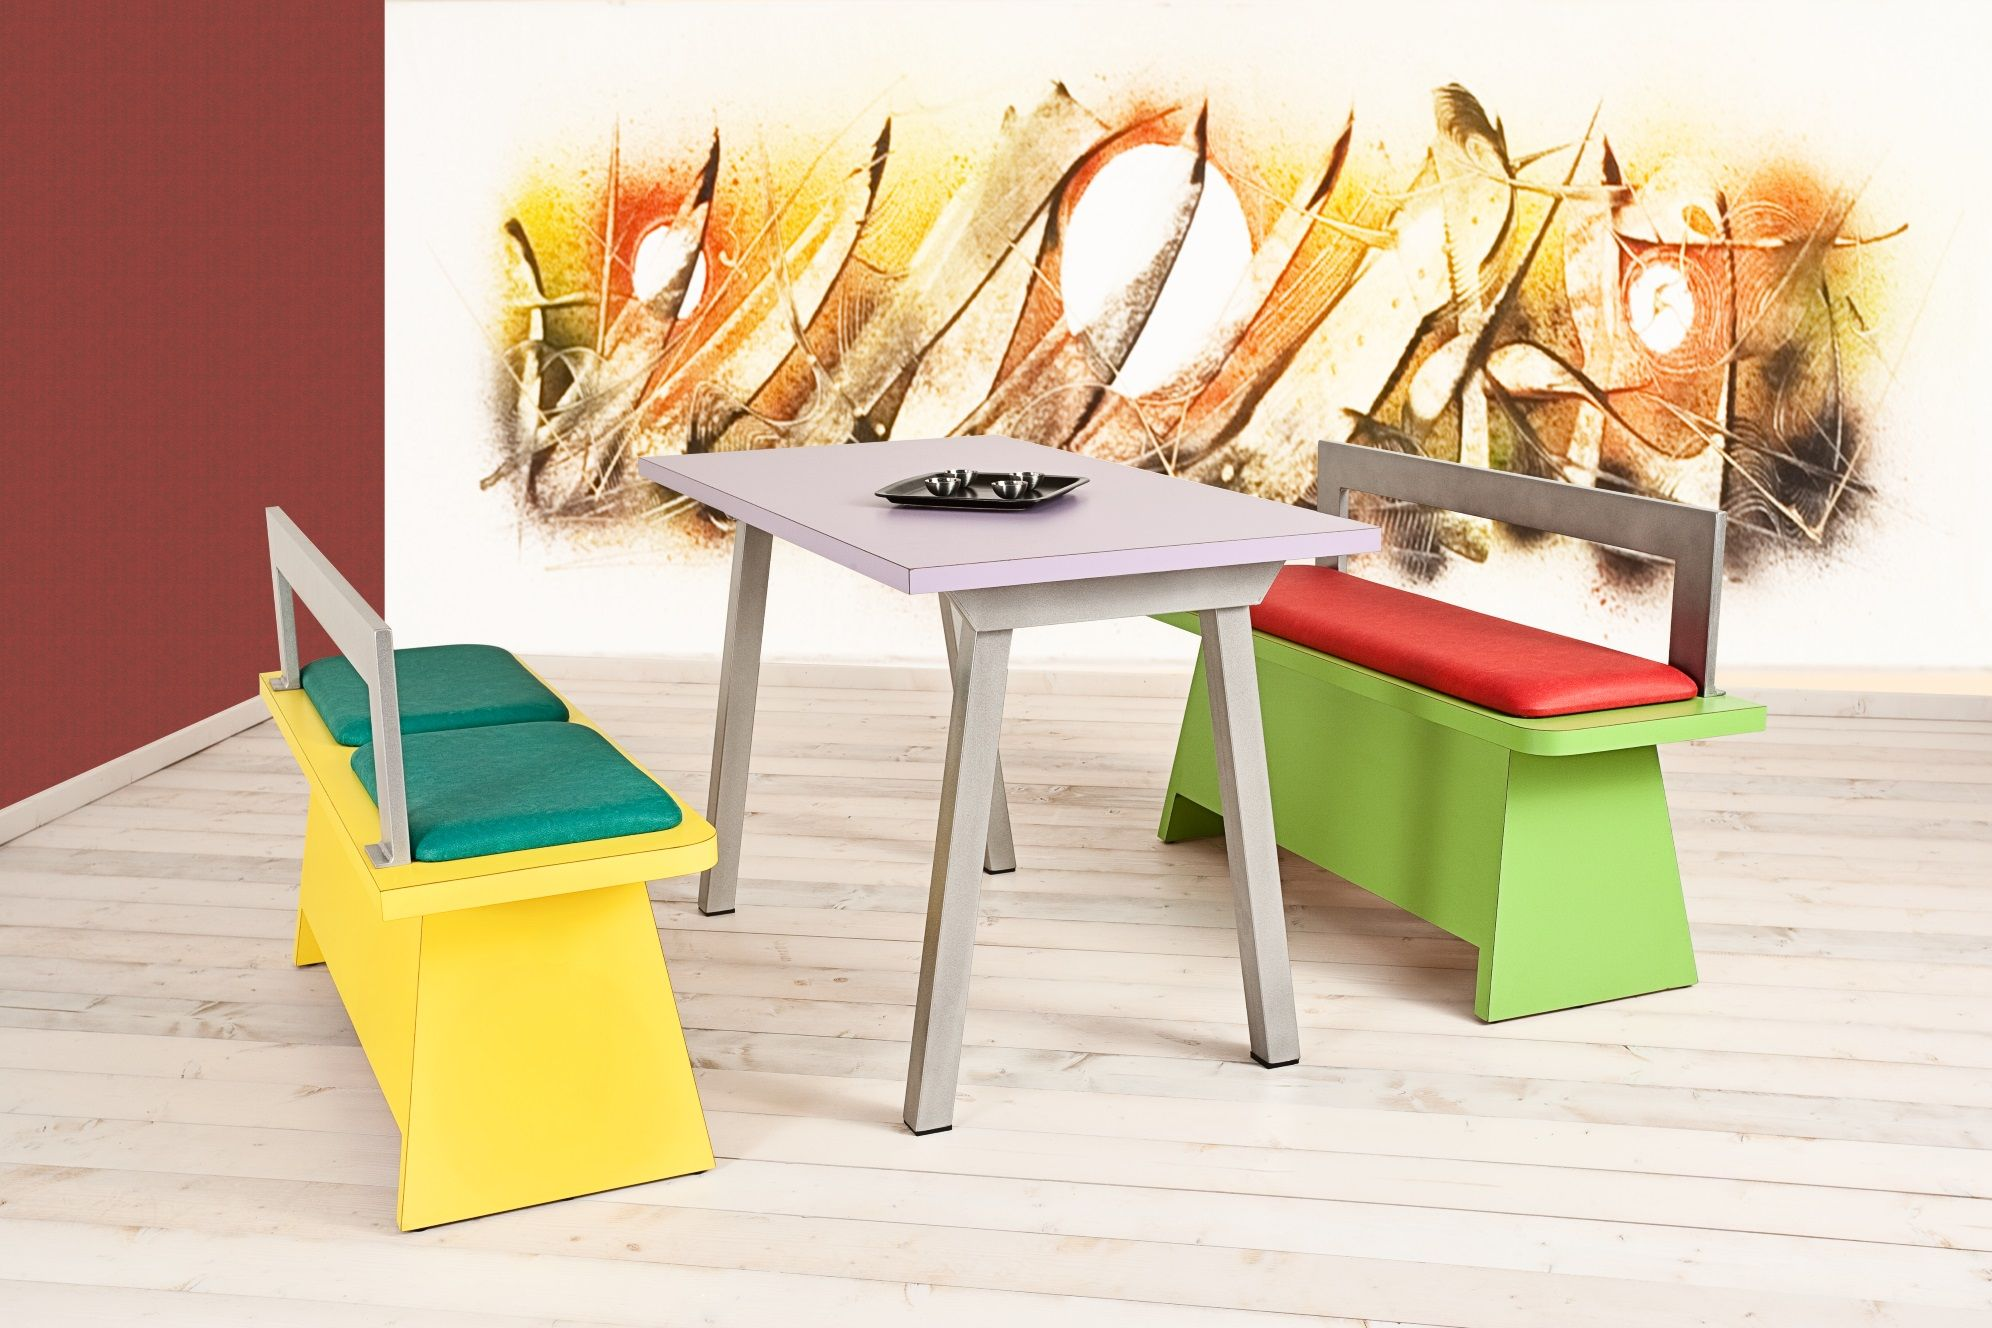 Panche Per Fast Food.Bench Set 115 Bench In Laminated Wood Eco Leather Seat And Metal Backrest Table With Metal Base And A Laminated Surface Set Panche 115 Tavoli Tavolo Sedie